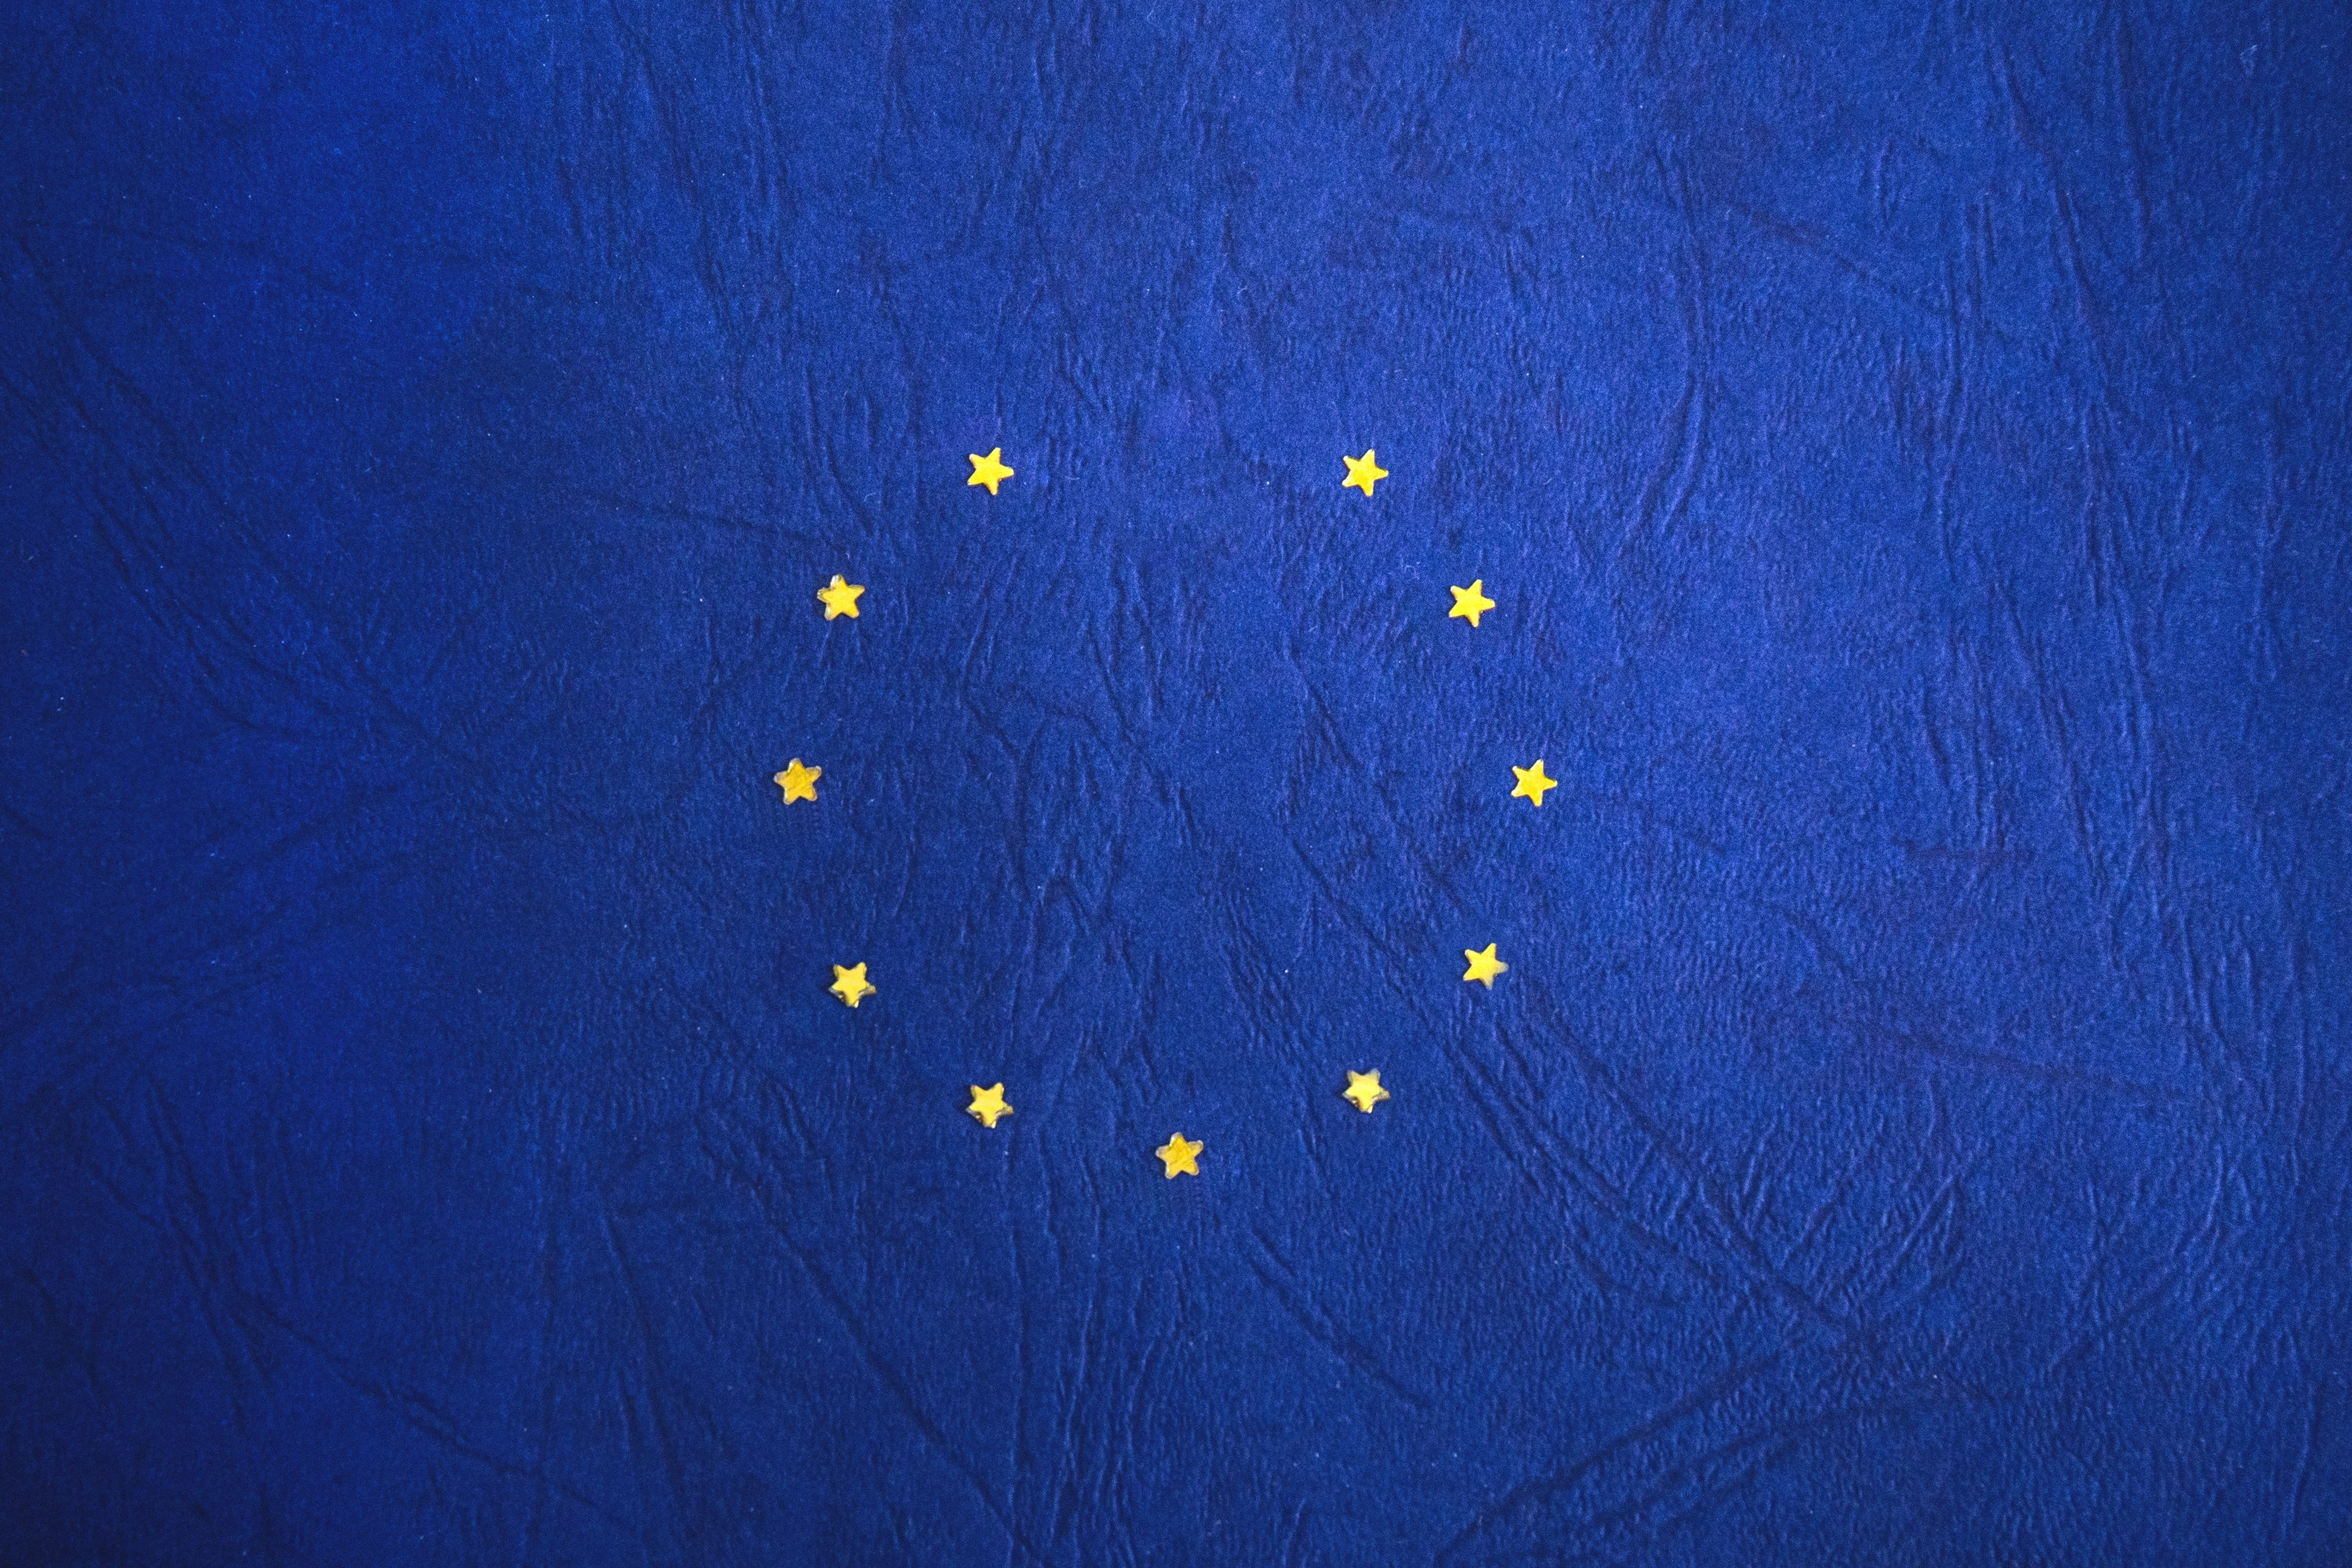 A picture of the EU flag